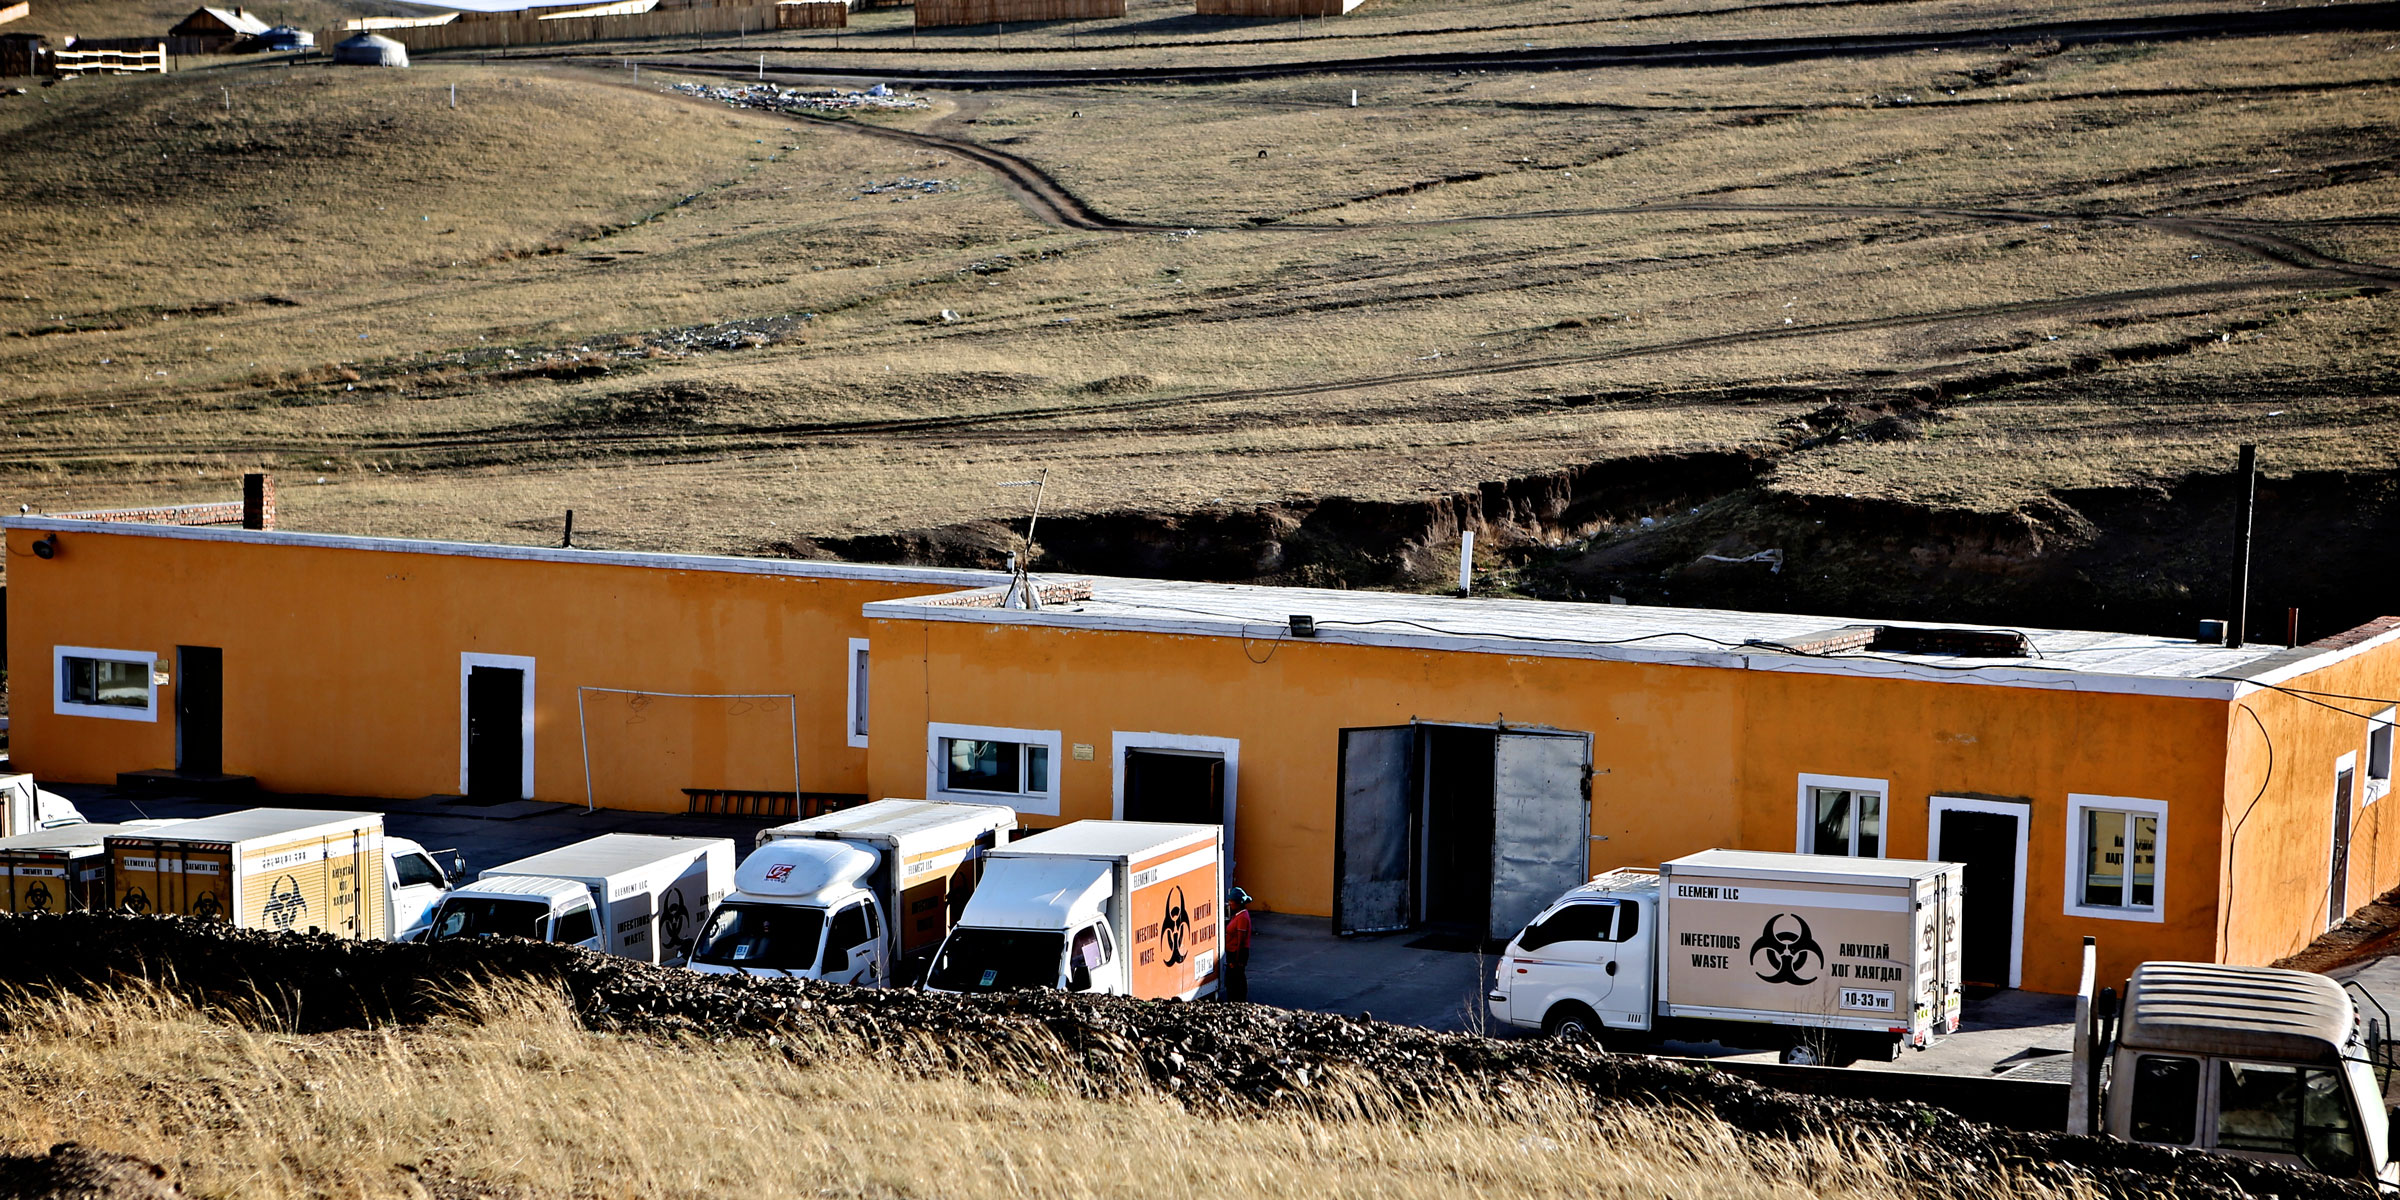 Infectious waste trucks in Mongolia.